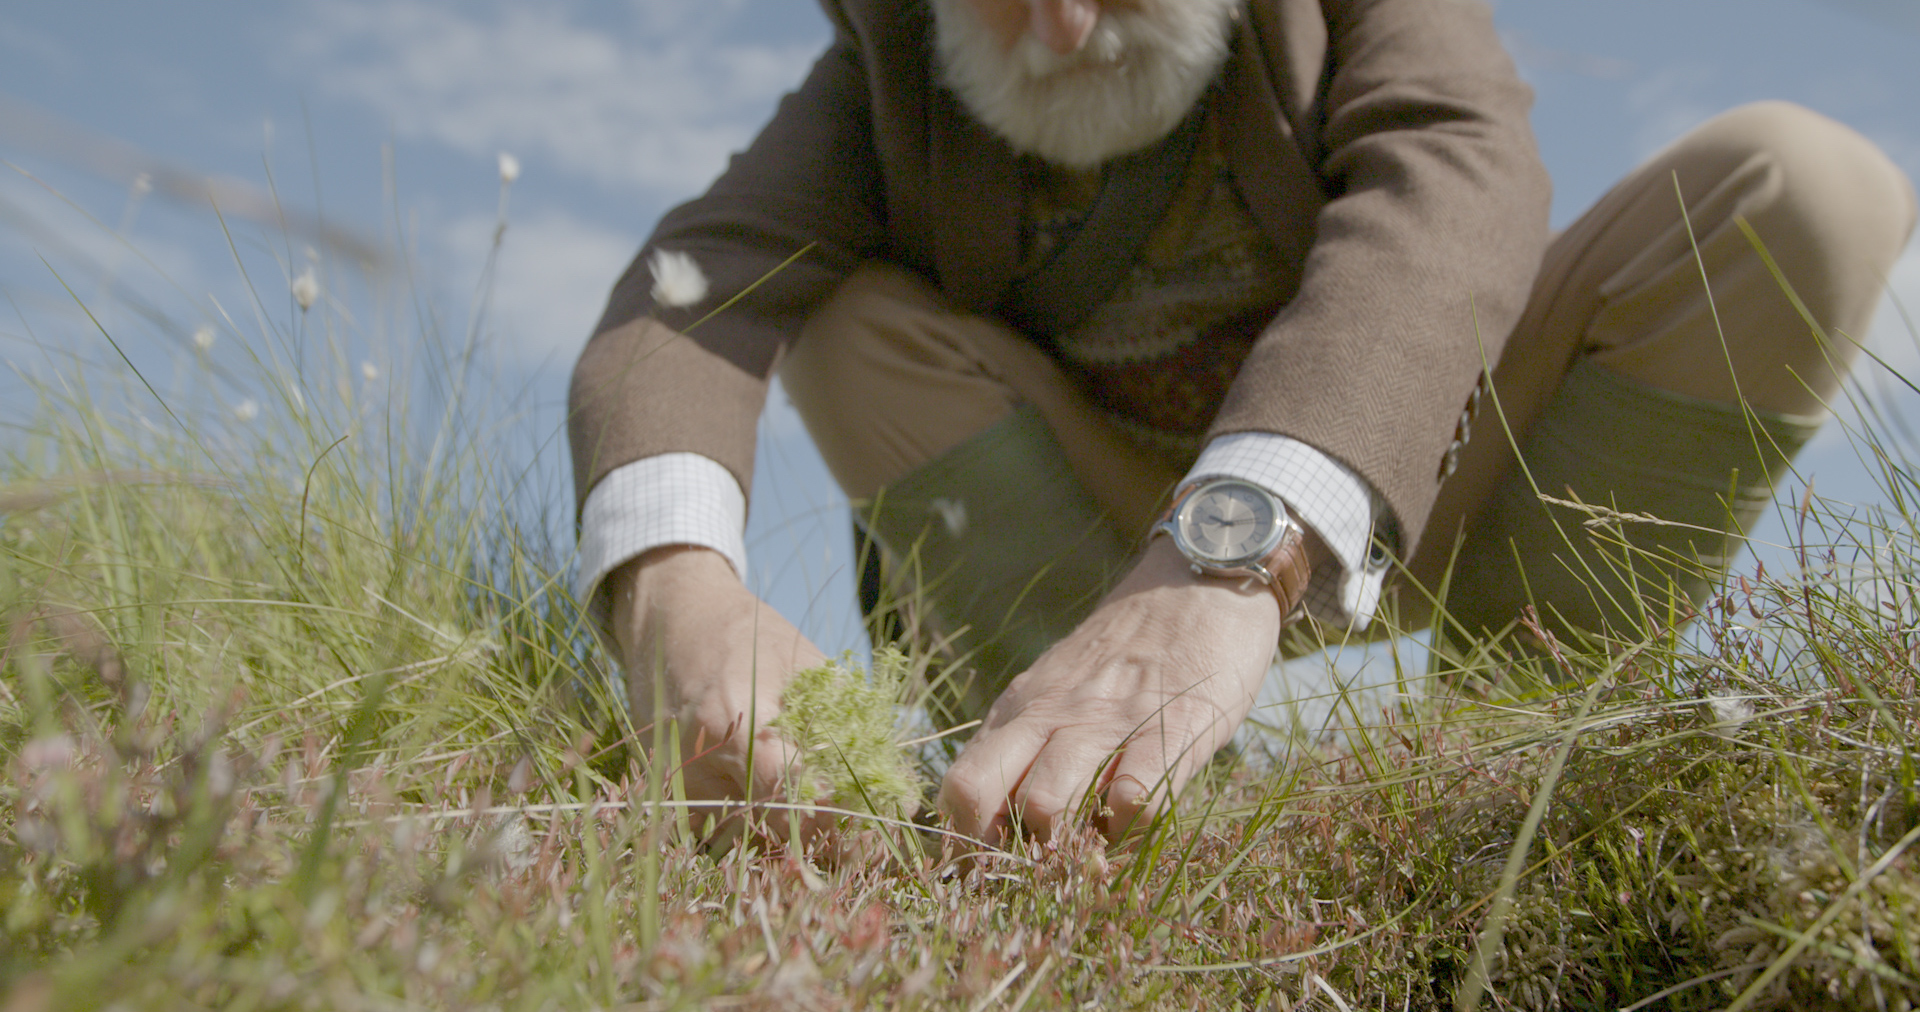 The Carbon Farmer (Melvyn Rawlinson) inspecting and planting sphagnum moss in his bog